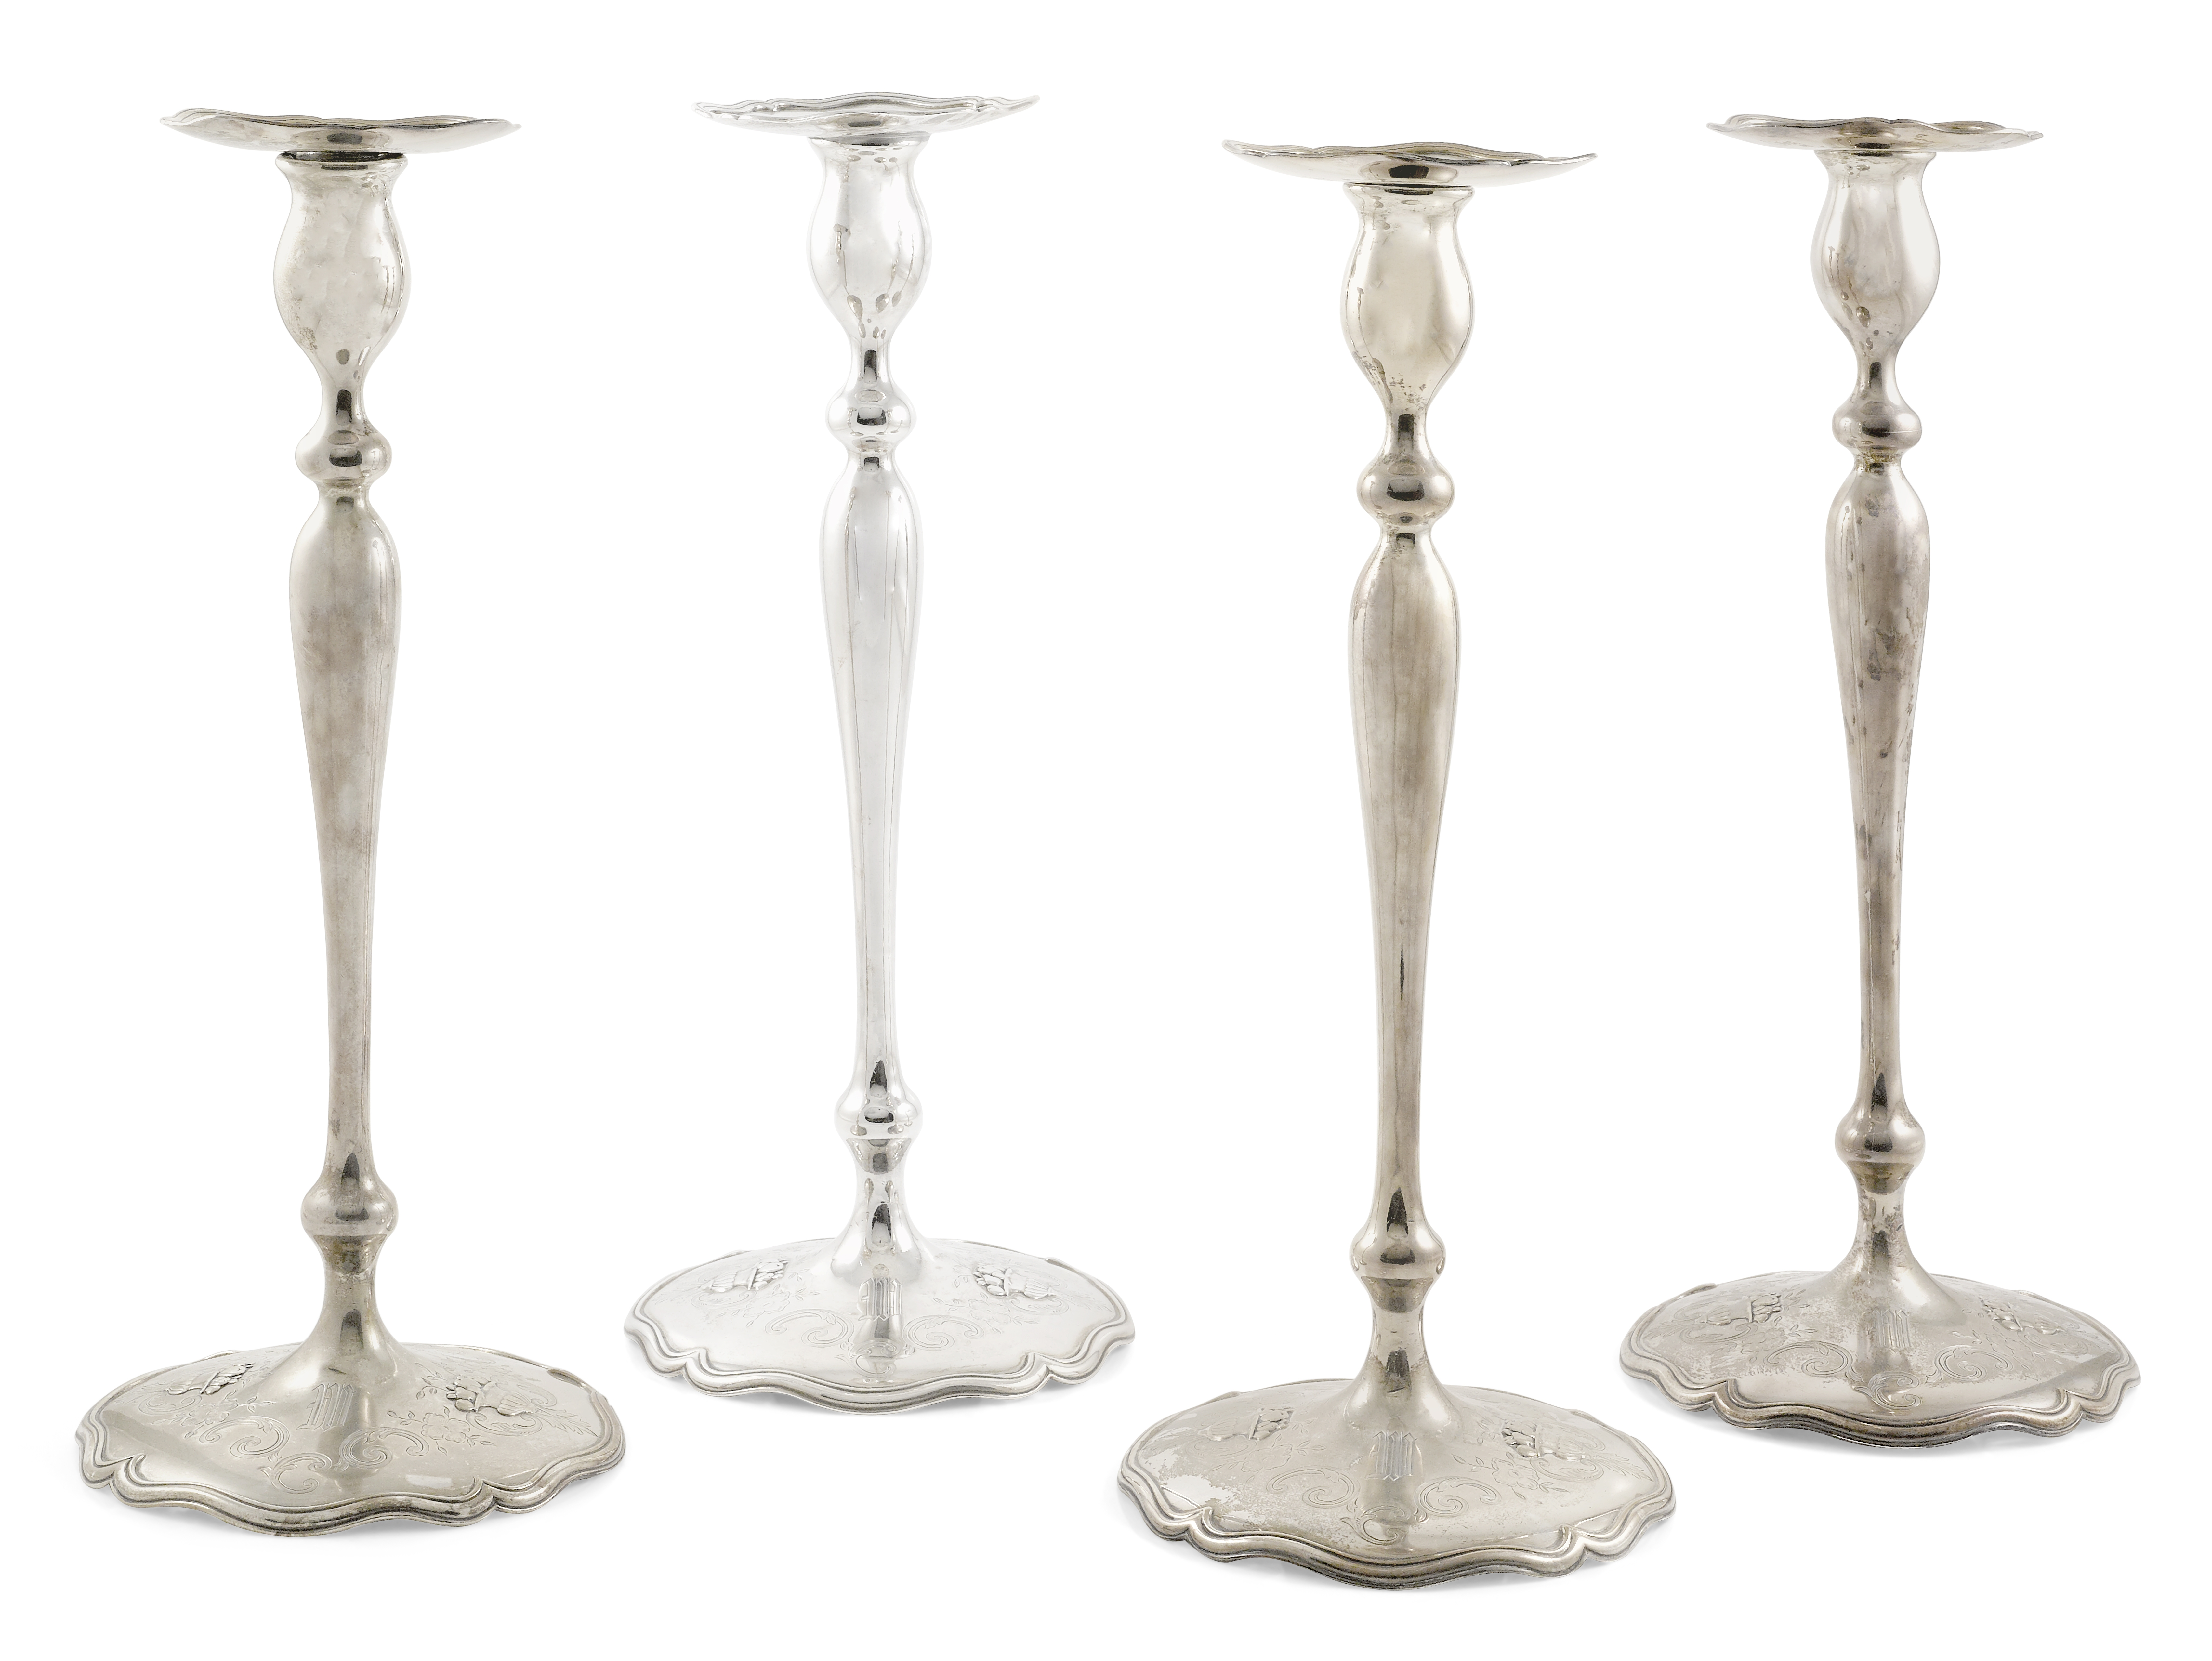 Four American sterling silver base loaded candlesticks by Shreve & Co., San Francisco, CA, 20th c...